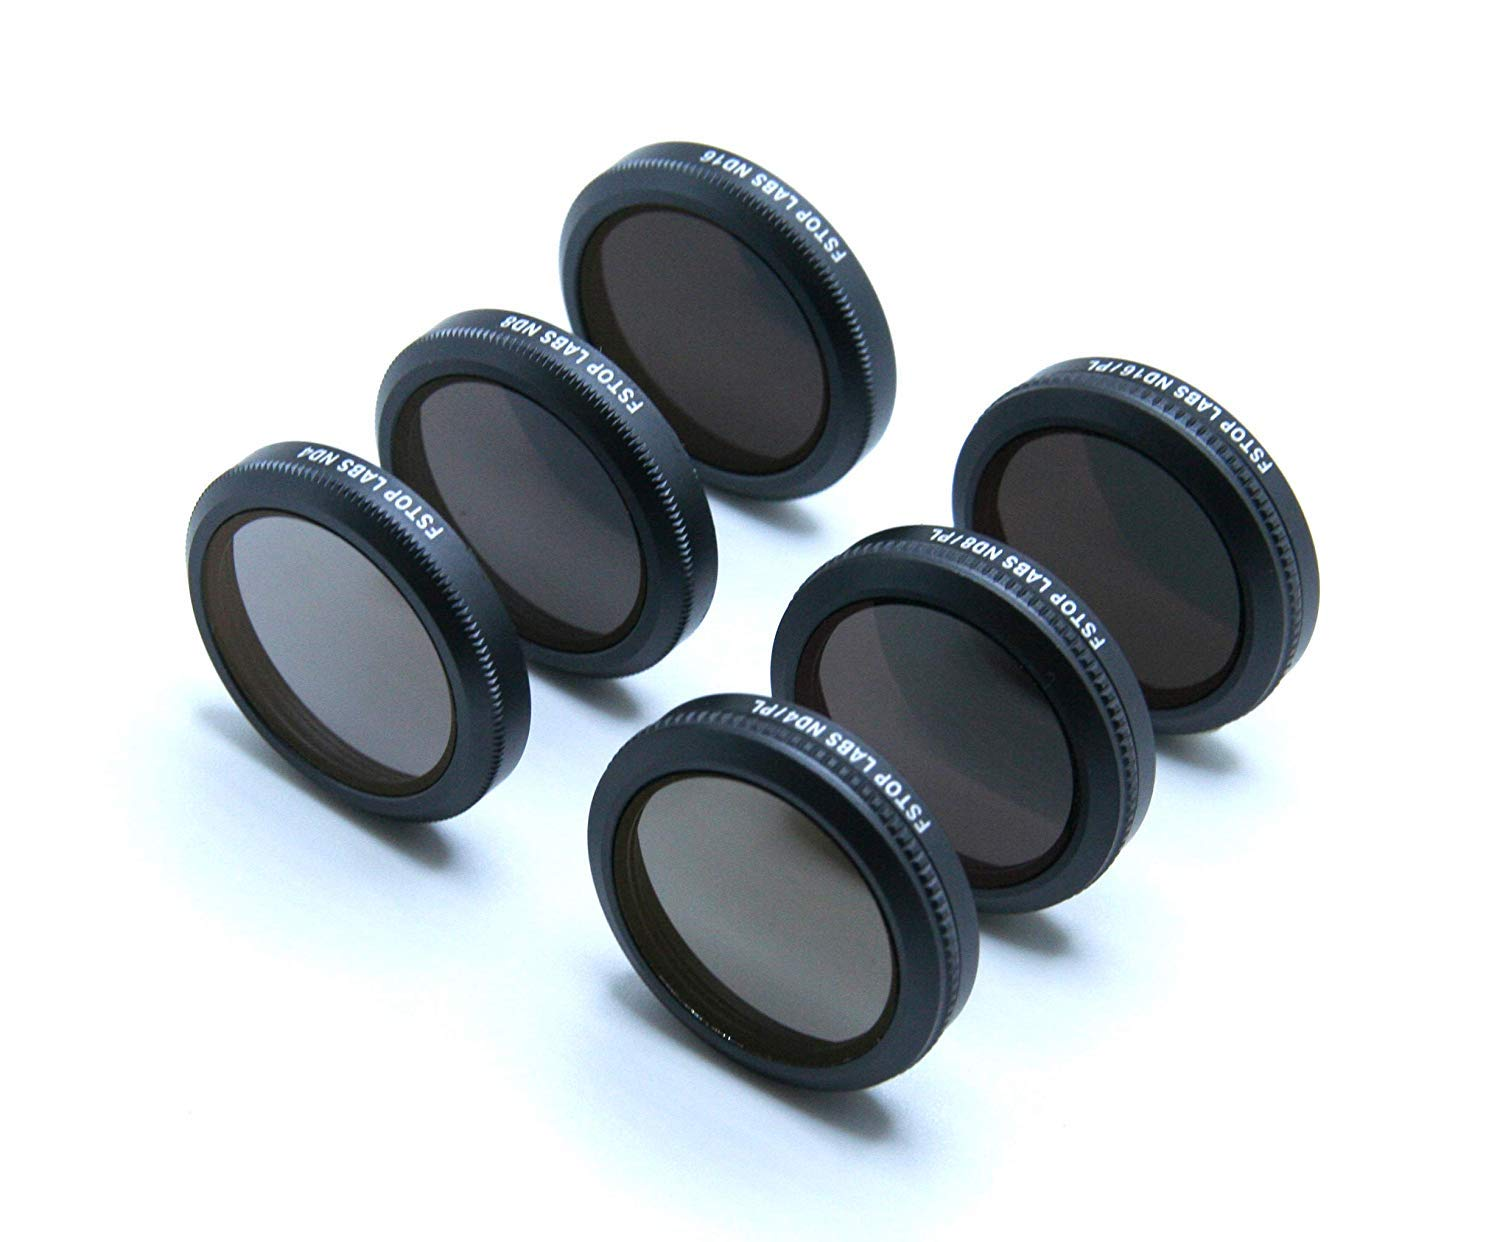 Lens Filters for DJI Mavic 2 Zoom Camera Lens Set, Multi Coated Filters Pack Accessories (6 Pack) ND4, ND8, ND16, ND4/CPL, ND8/CPL, ND16/CPL